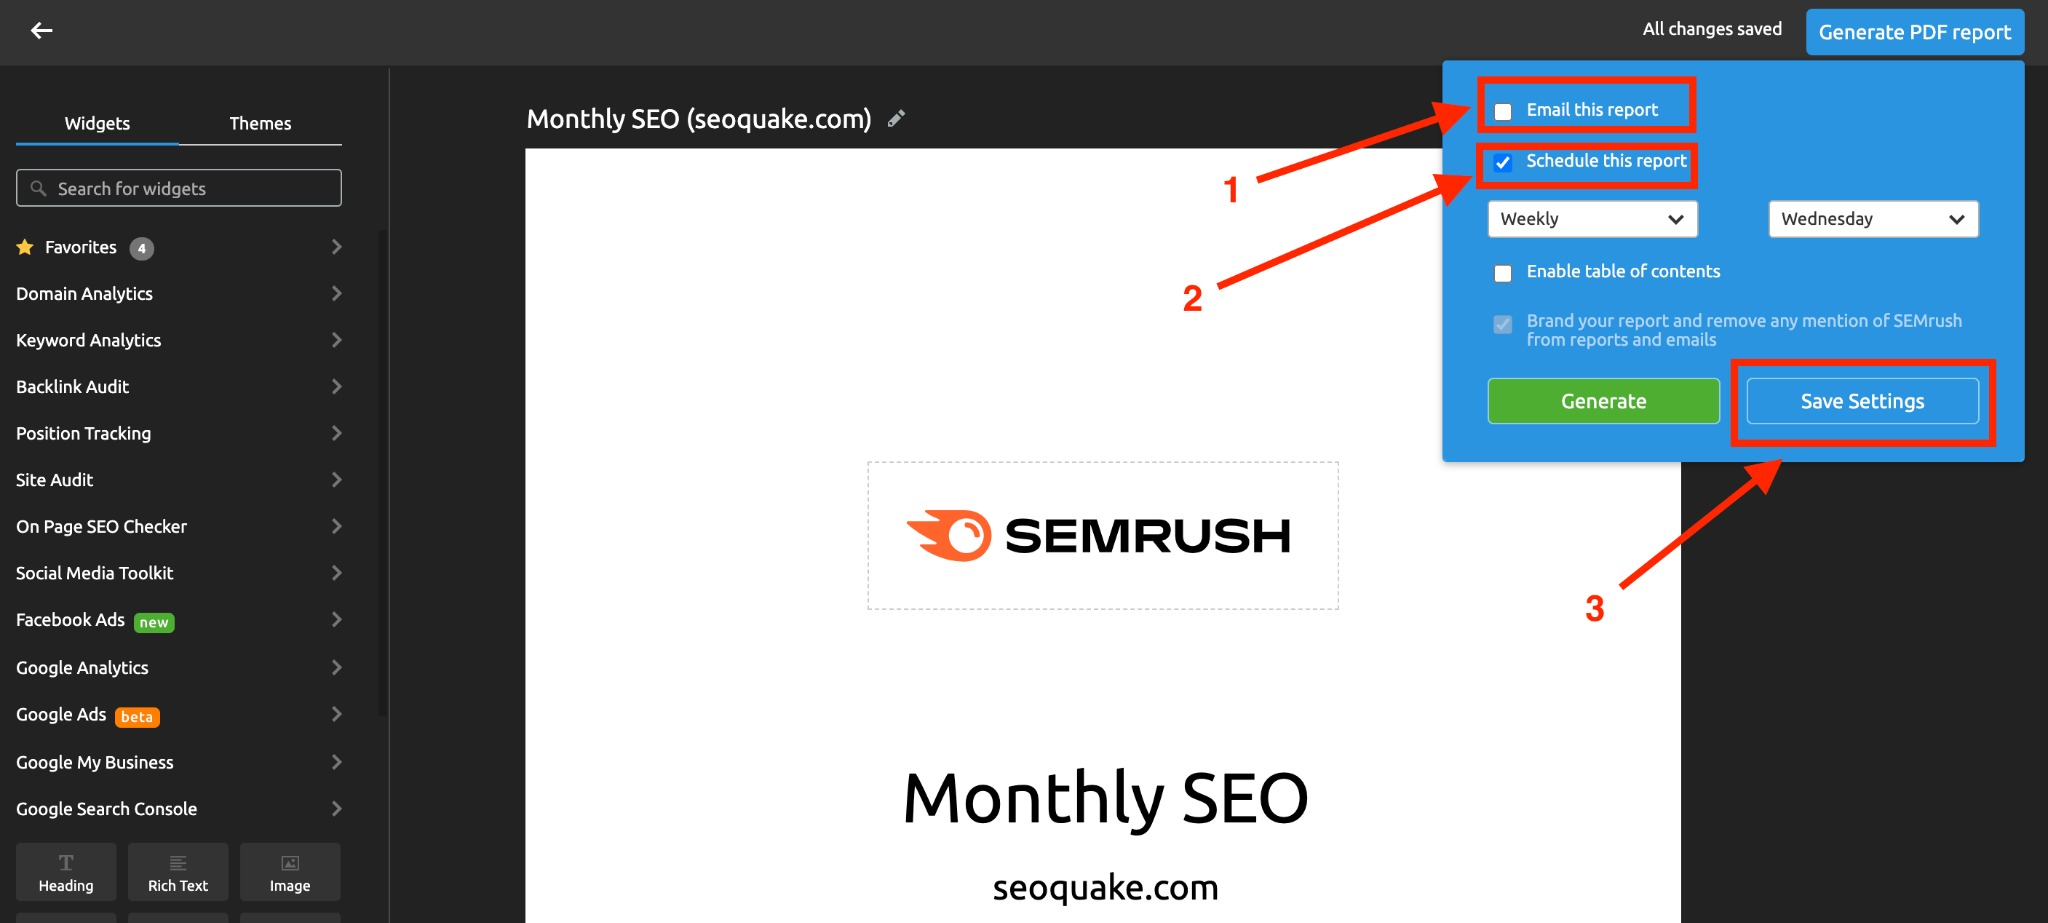 Report Automation with Semrush image 7